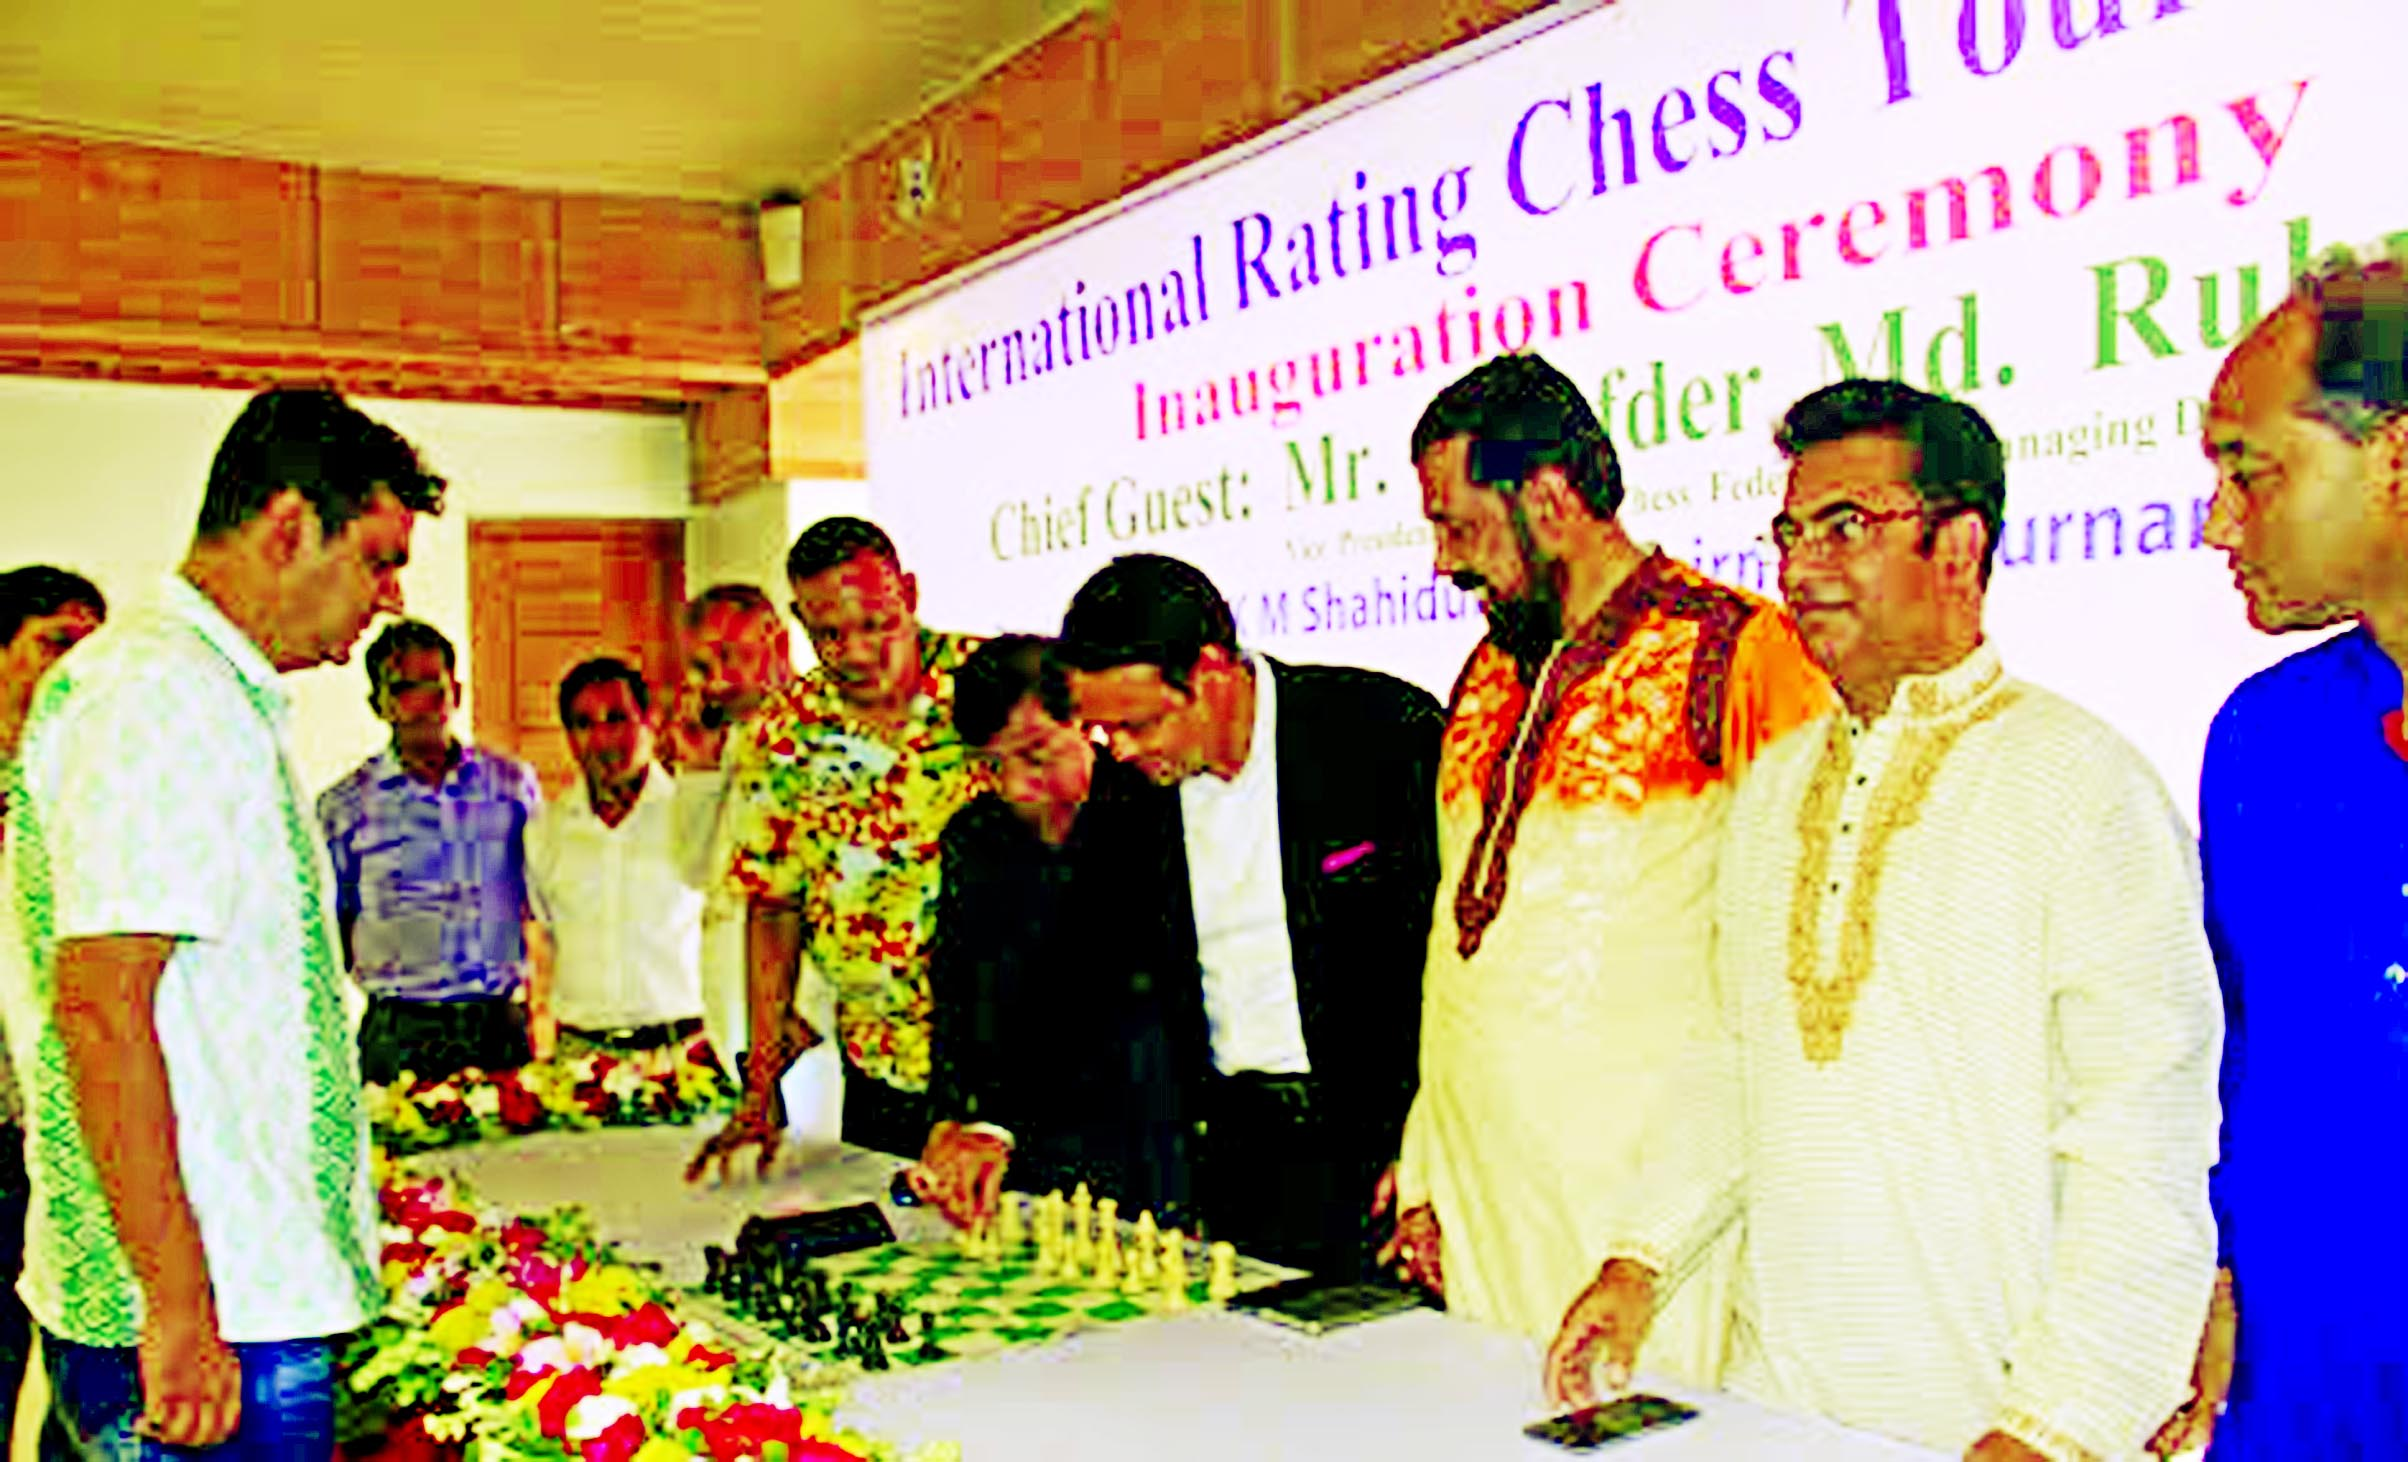 Vice-President of Bangladesh Chess Federation and Managing Director of Saif Powertec Limited Tarafder Md Ruhul Amin formally opens the International Rating Chess Tournament as the chief guest at National Sports Council tower auditorium lounge on Friday.